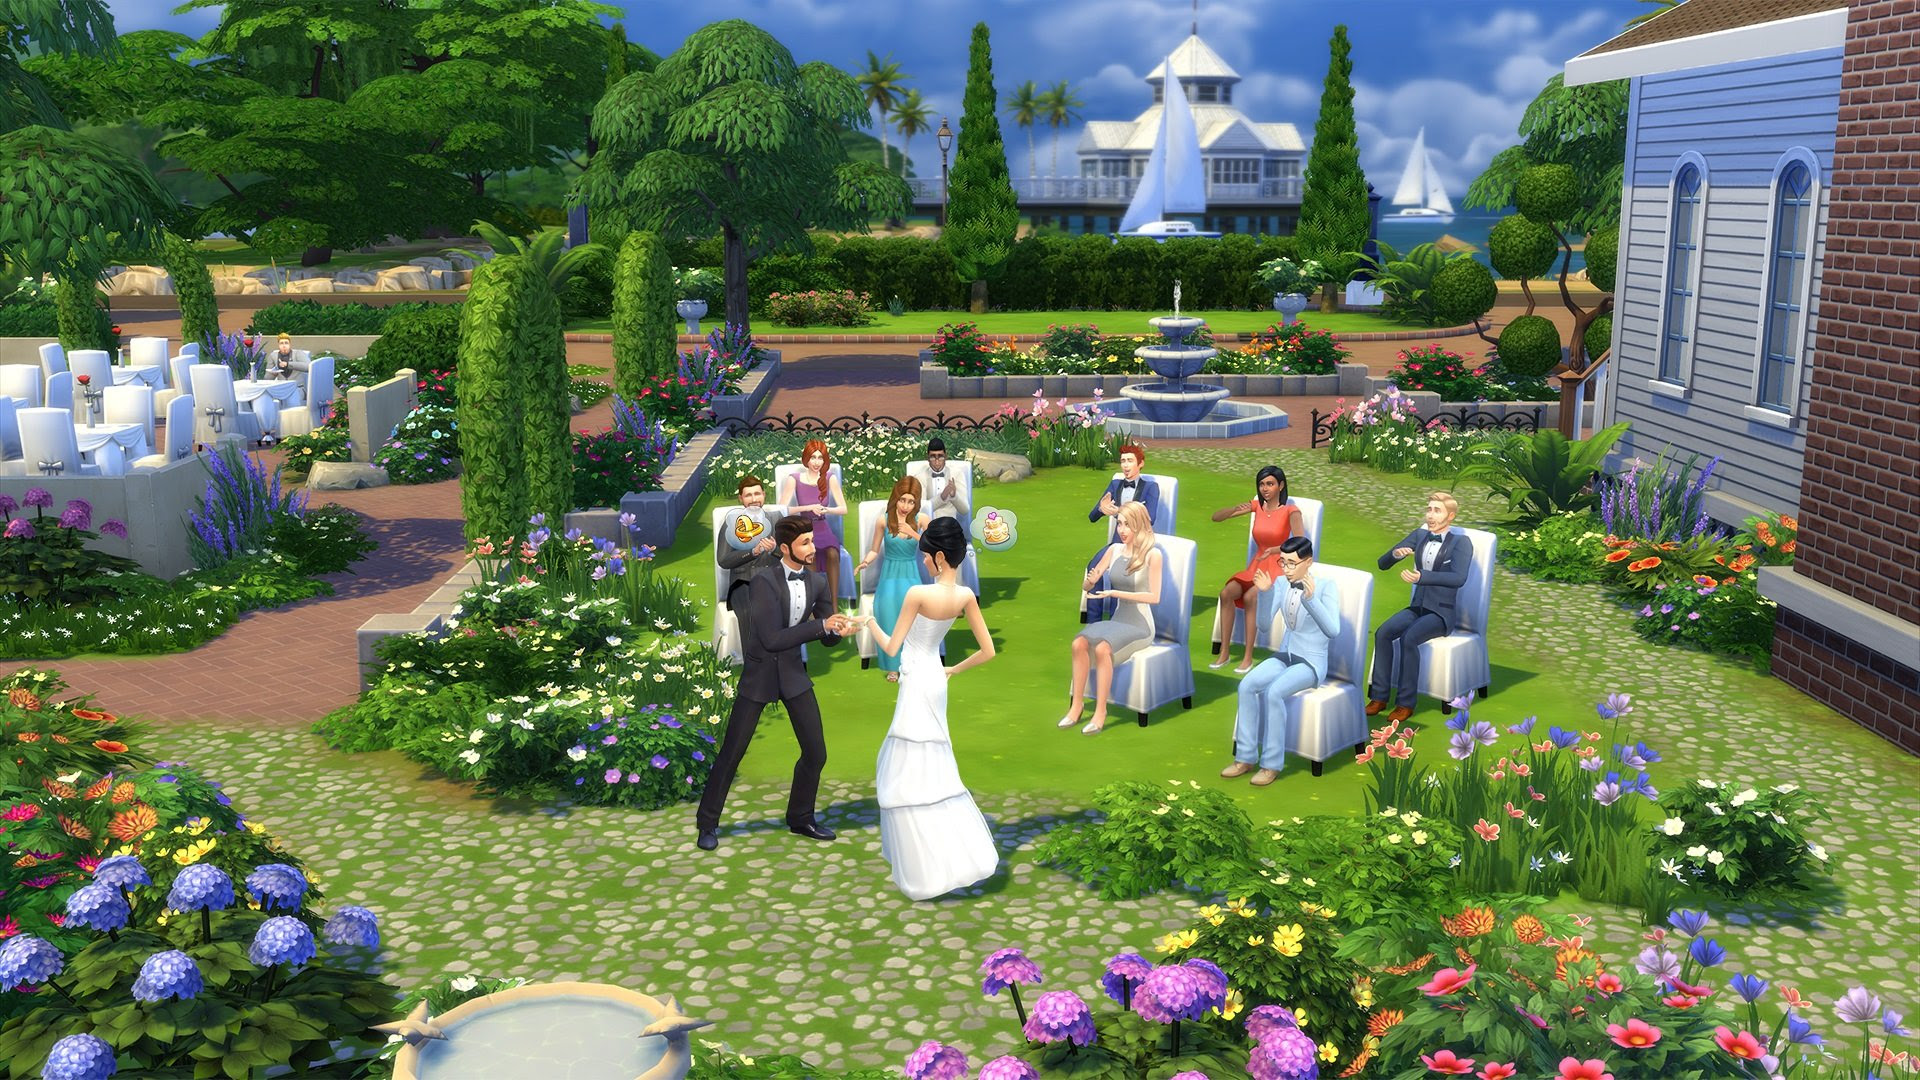 The Sims 4 moves to PS4 and Xbox One this November screenshot